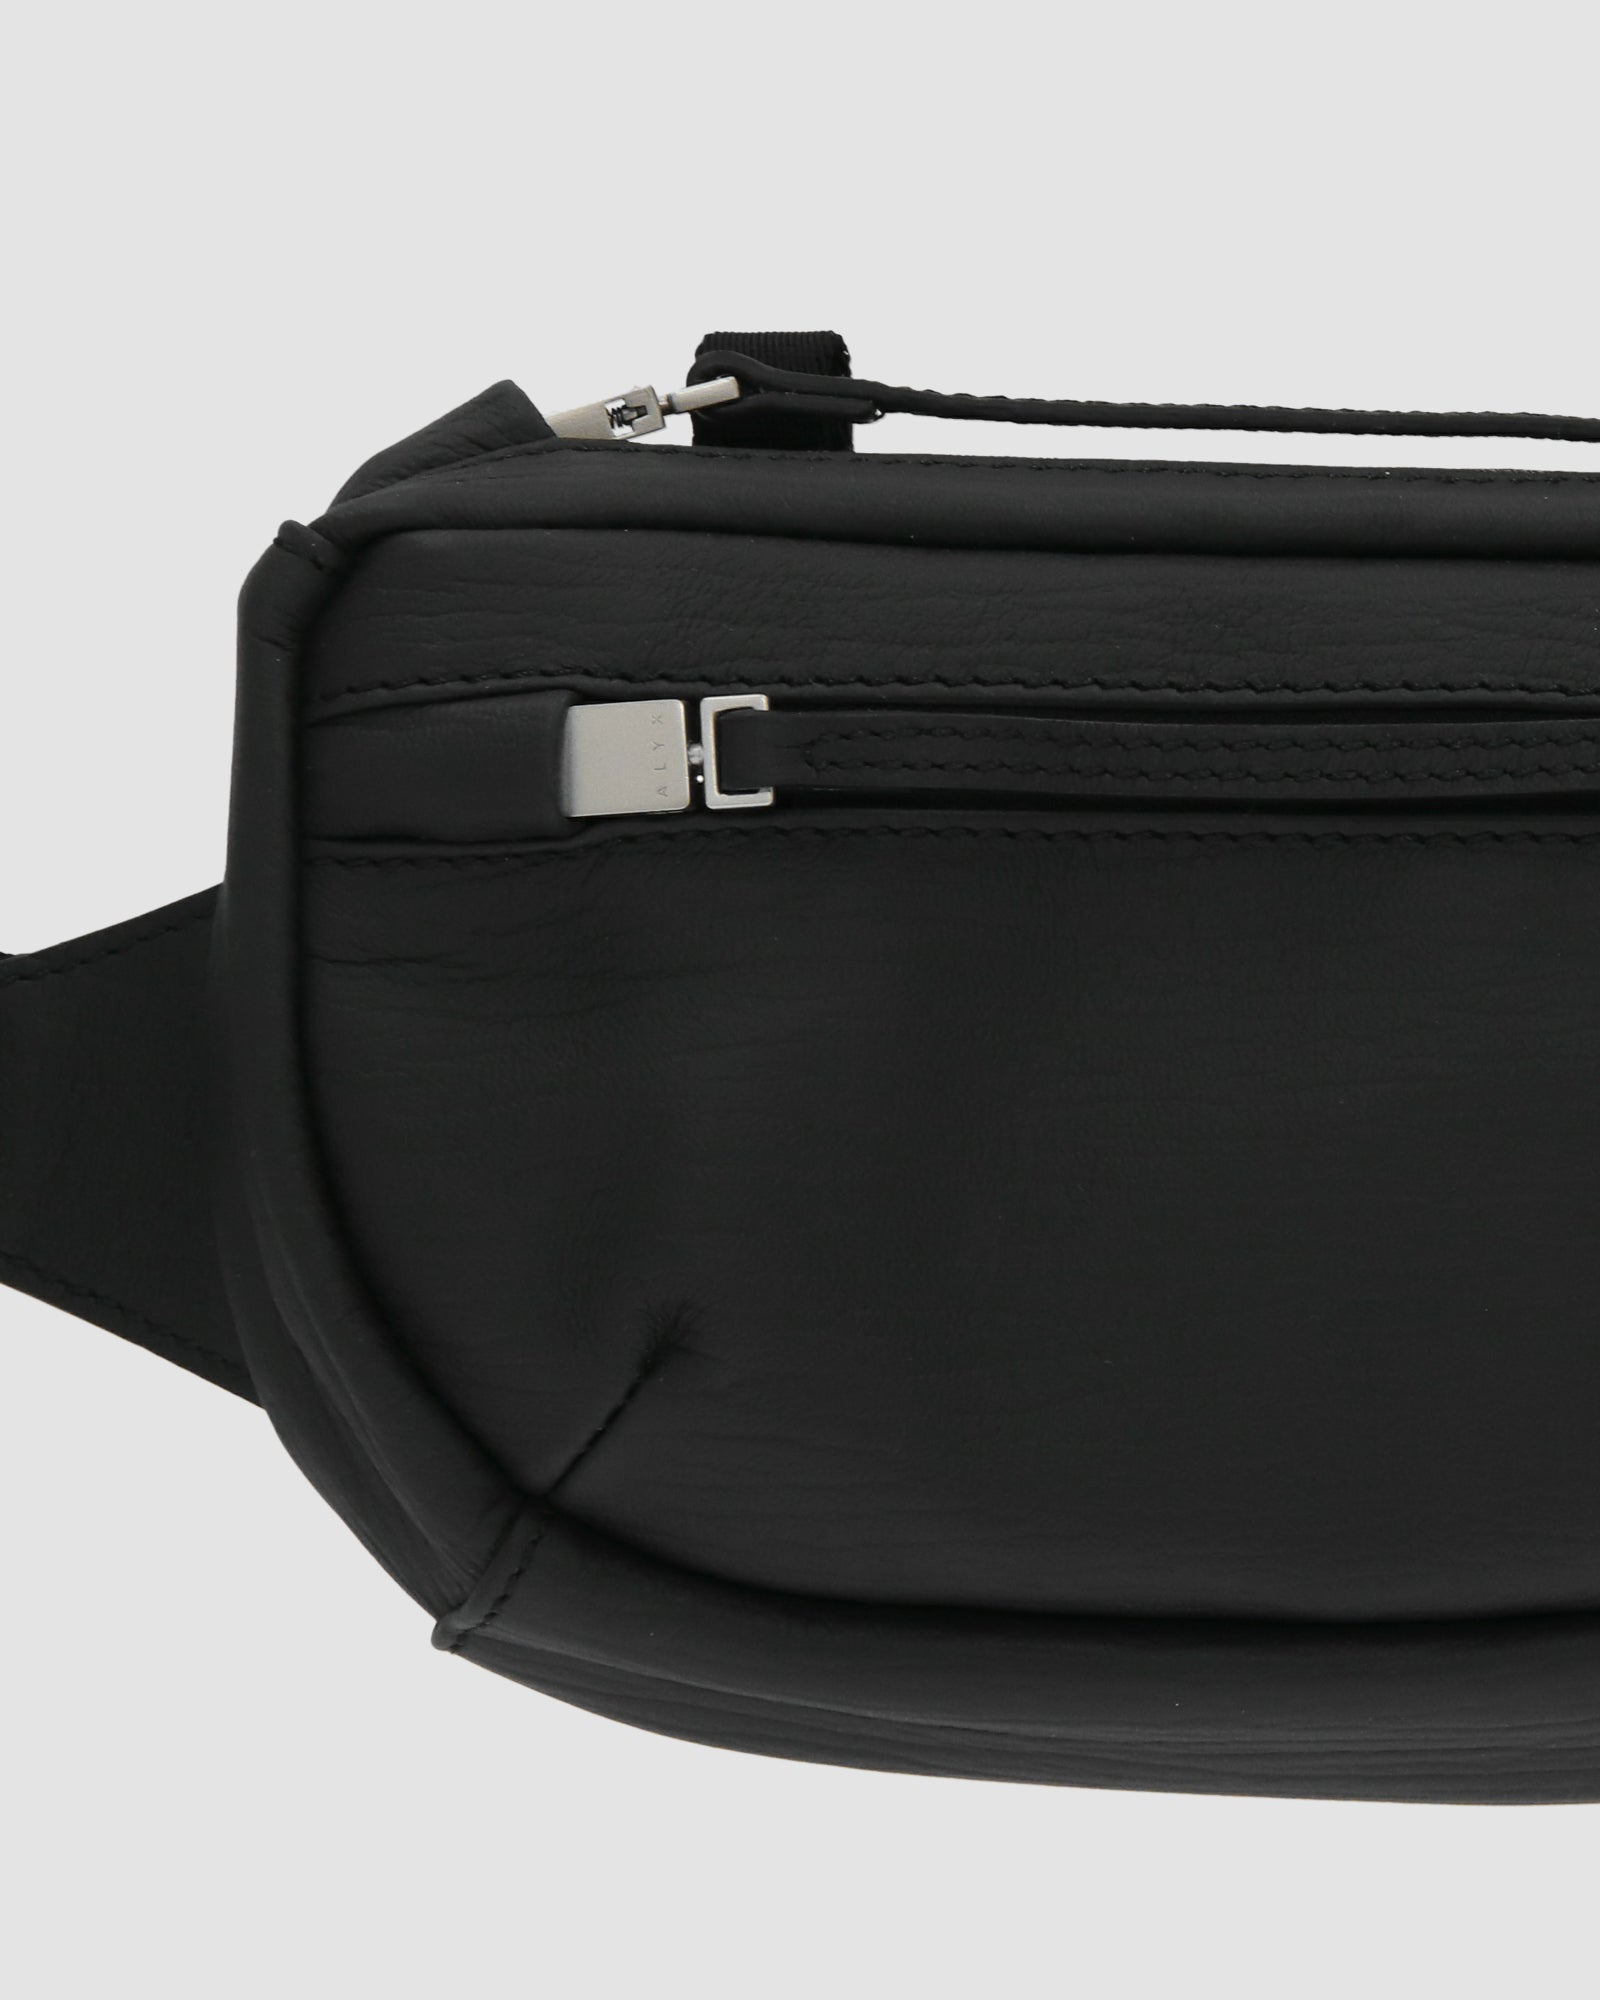 1017 ALYX 9SM | SMALL WAIST POUCH | Bag | Accessories, Bags, BELT BAGS, BLACK, Man, S20, S20 Drop II, UNISEX, Woman